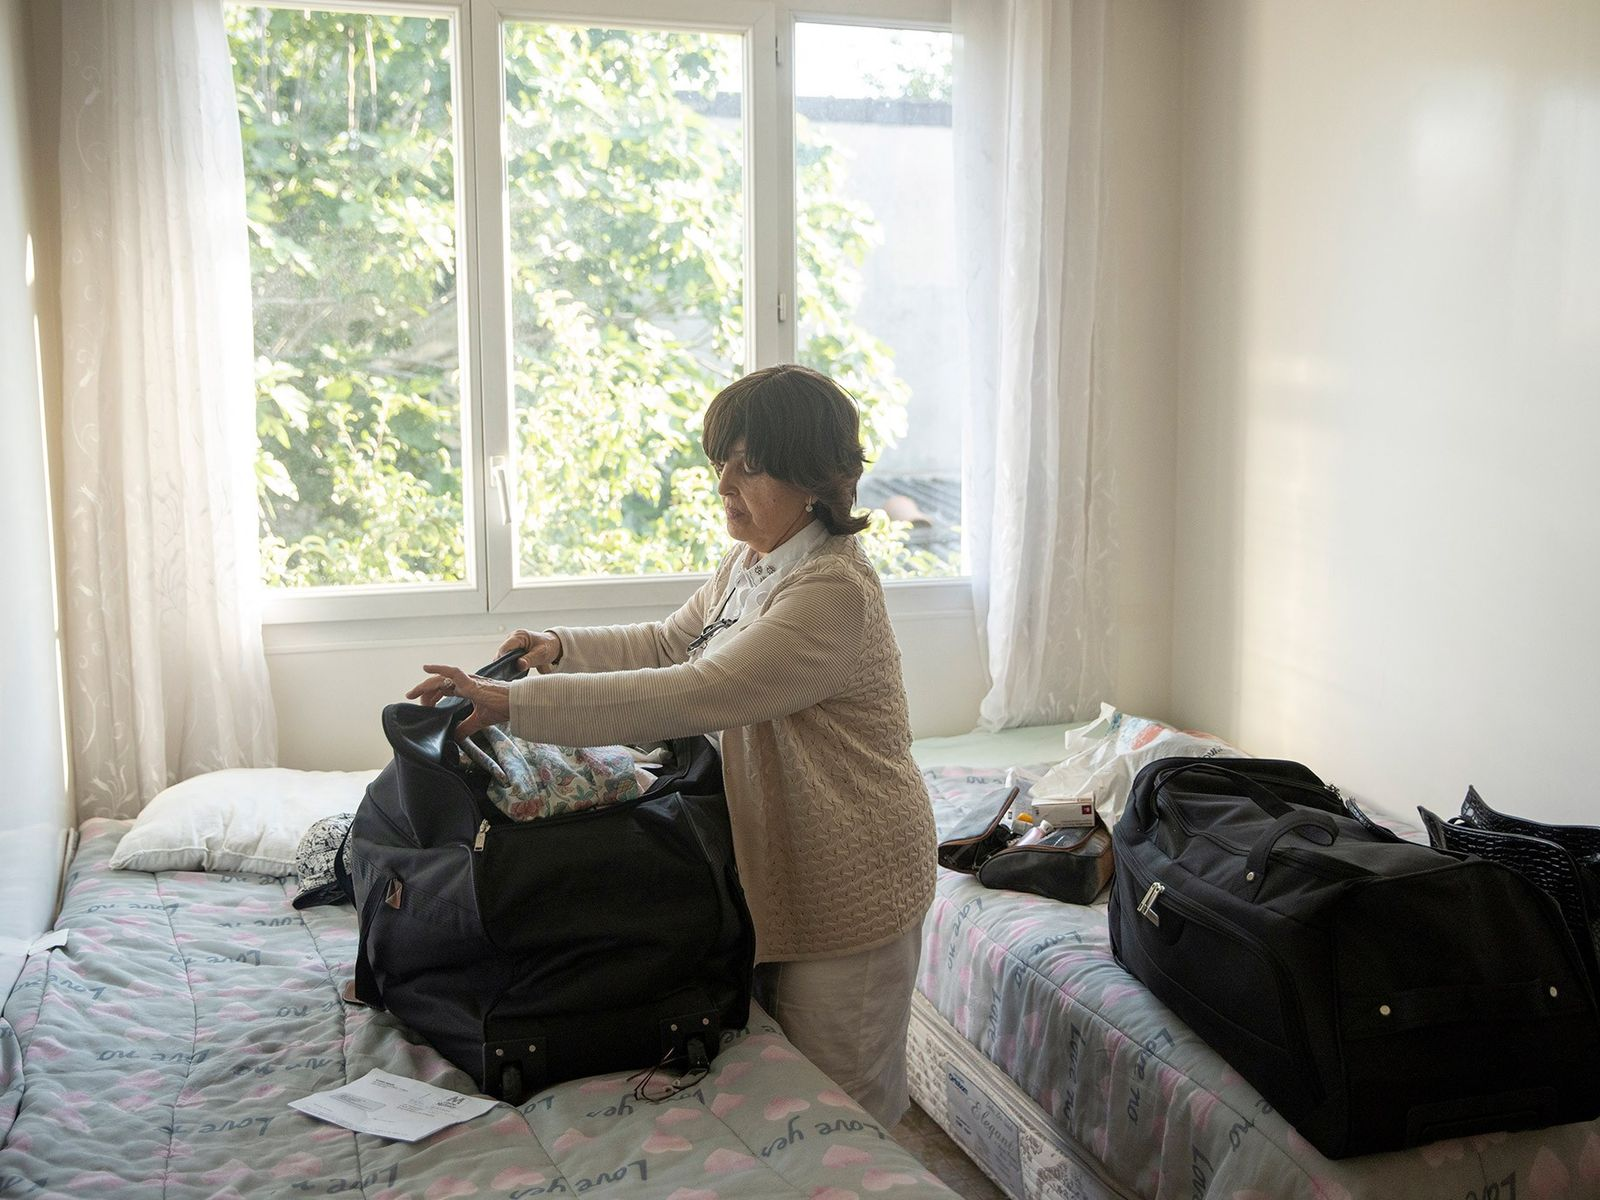 Esther Elfersi finishes packing her bags for the journey the next morning.